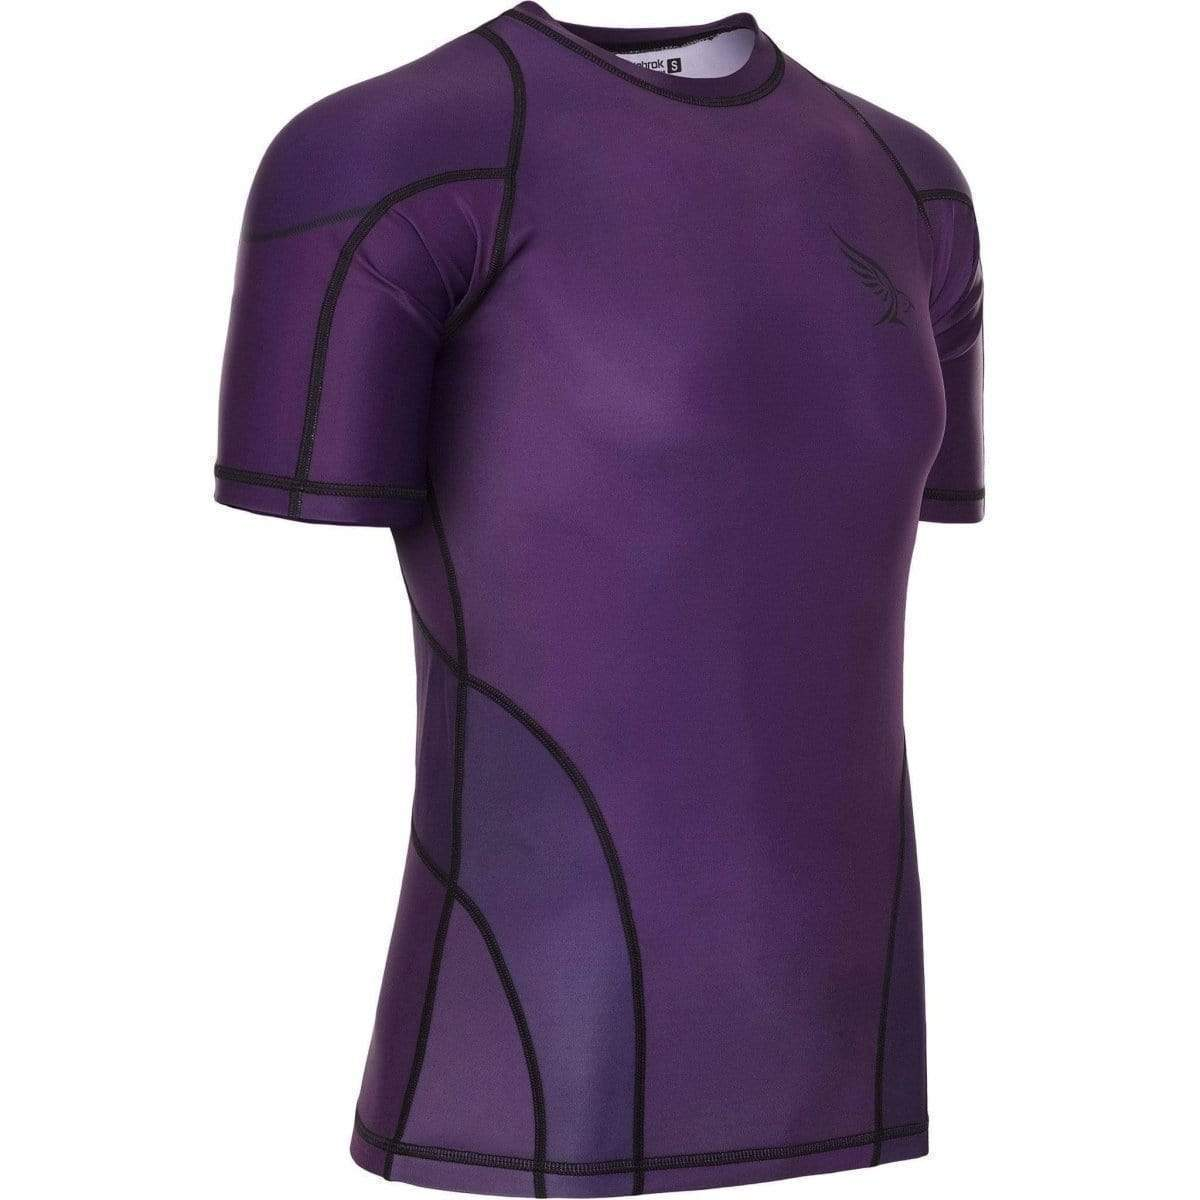 Habrok Rash Guard S / PURPLE Pugnator 2.0 | Rash Guard | Half Sleeve | Men | Purple Pugnator | BJJ Rash Guard | Habrok